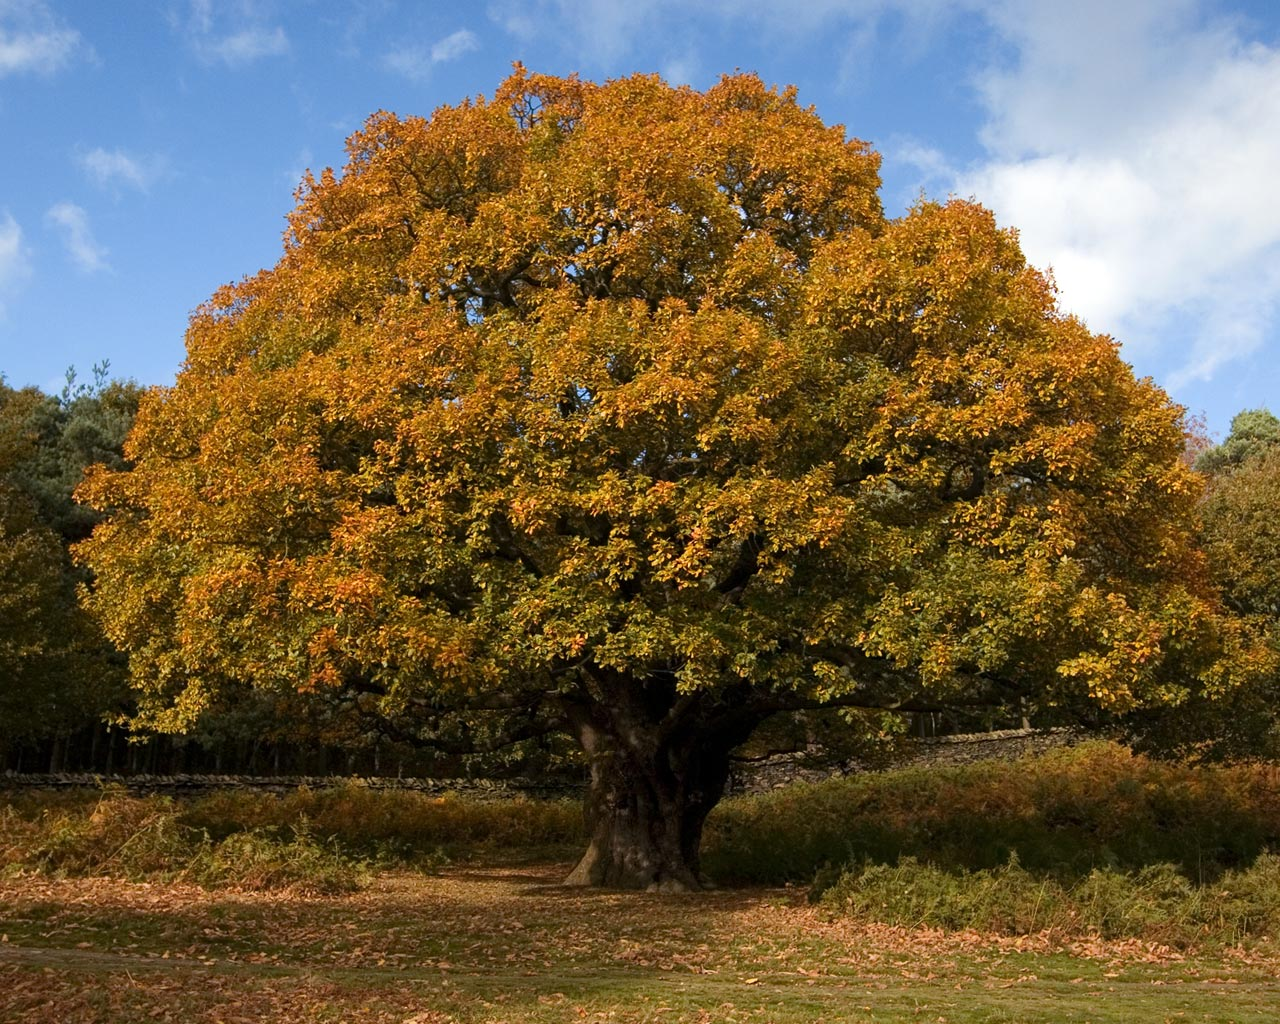 Common Name: Oak Scientific Name: Quercus species. Family: Fagaceae (the Beech family)